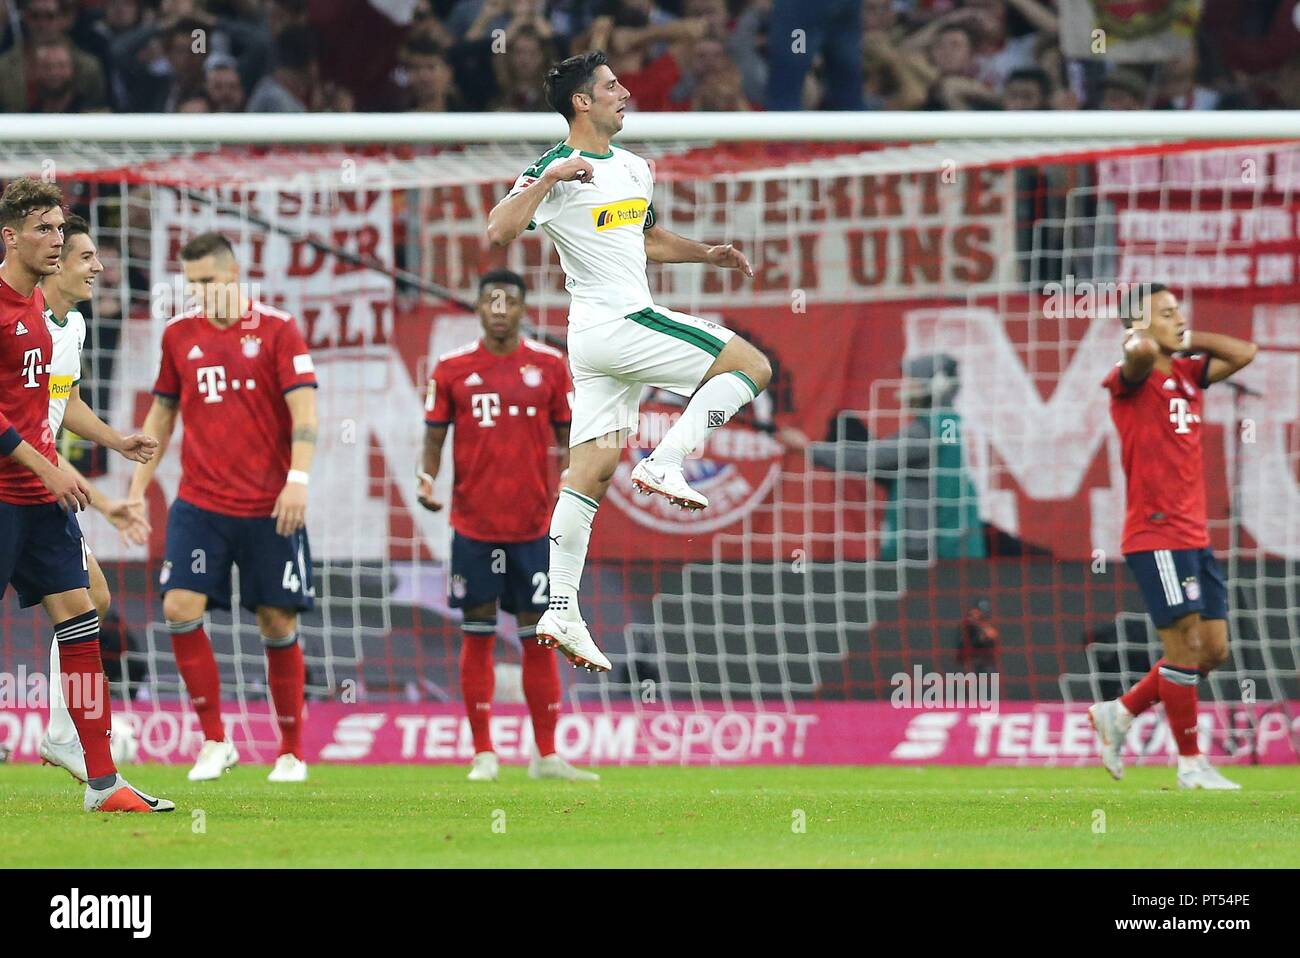 firo: 06.10.2018 Fuvuball, Football: 1.Bundesliga FC Bayern Munich - Borussia Mv? nchengladbach, Lars Stindl, Gladbach, jubilation | usage worldwide Stock Photo